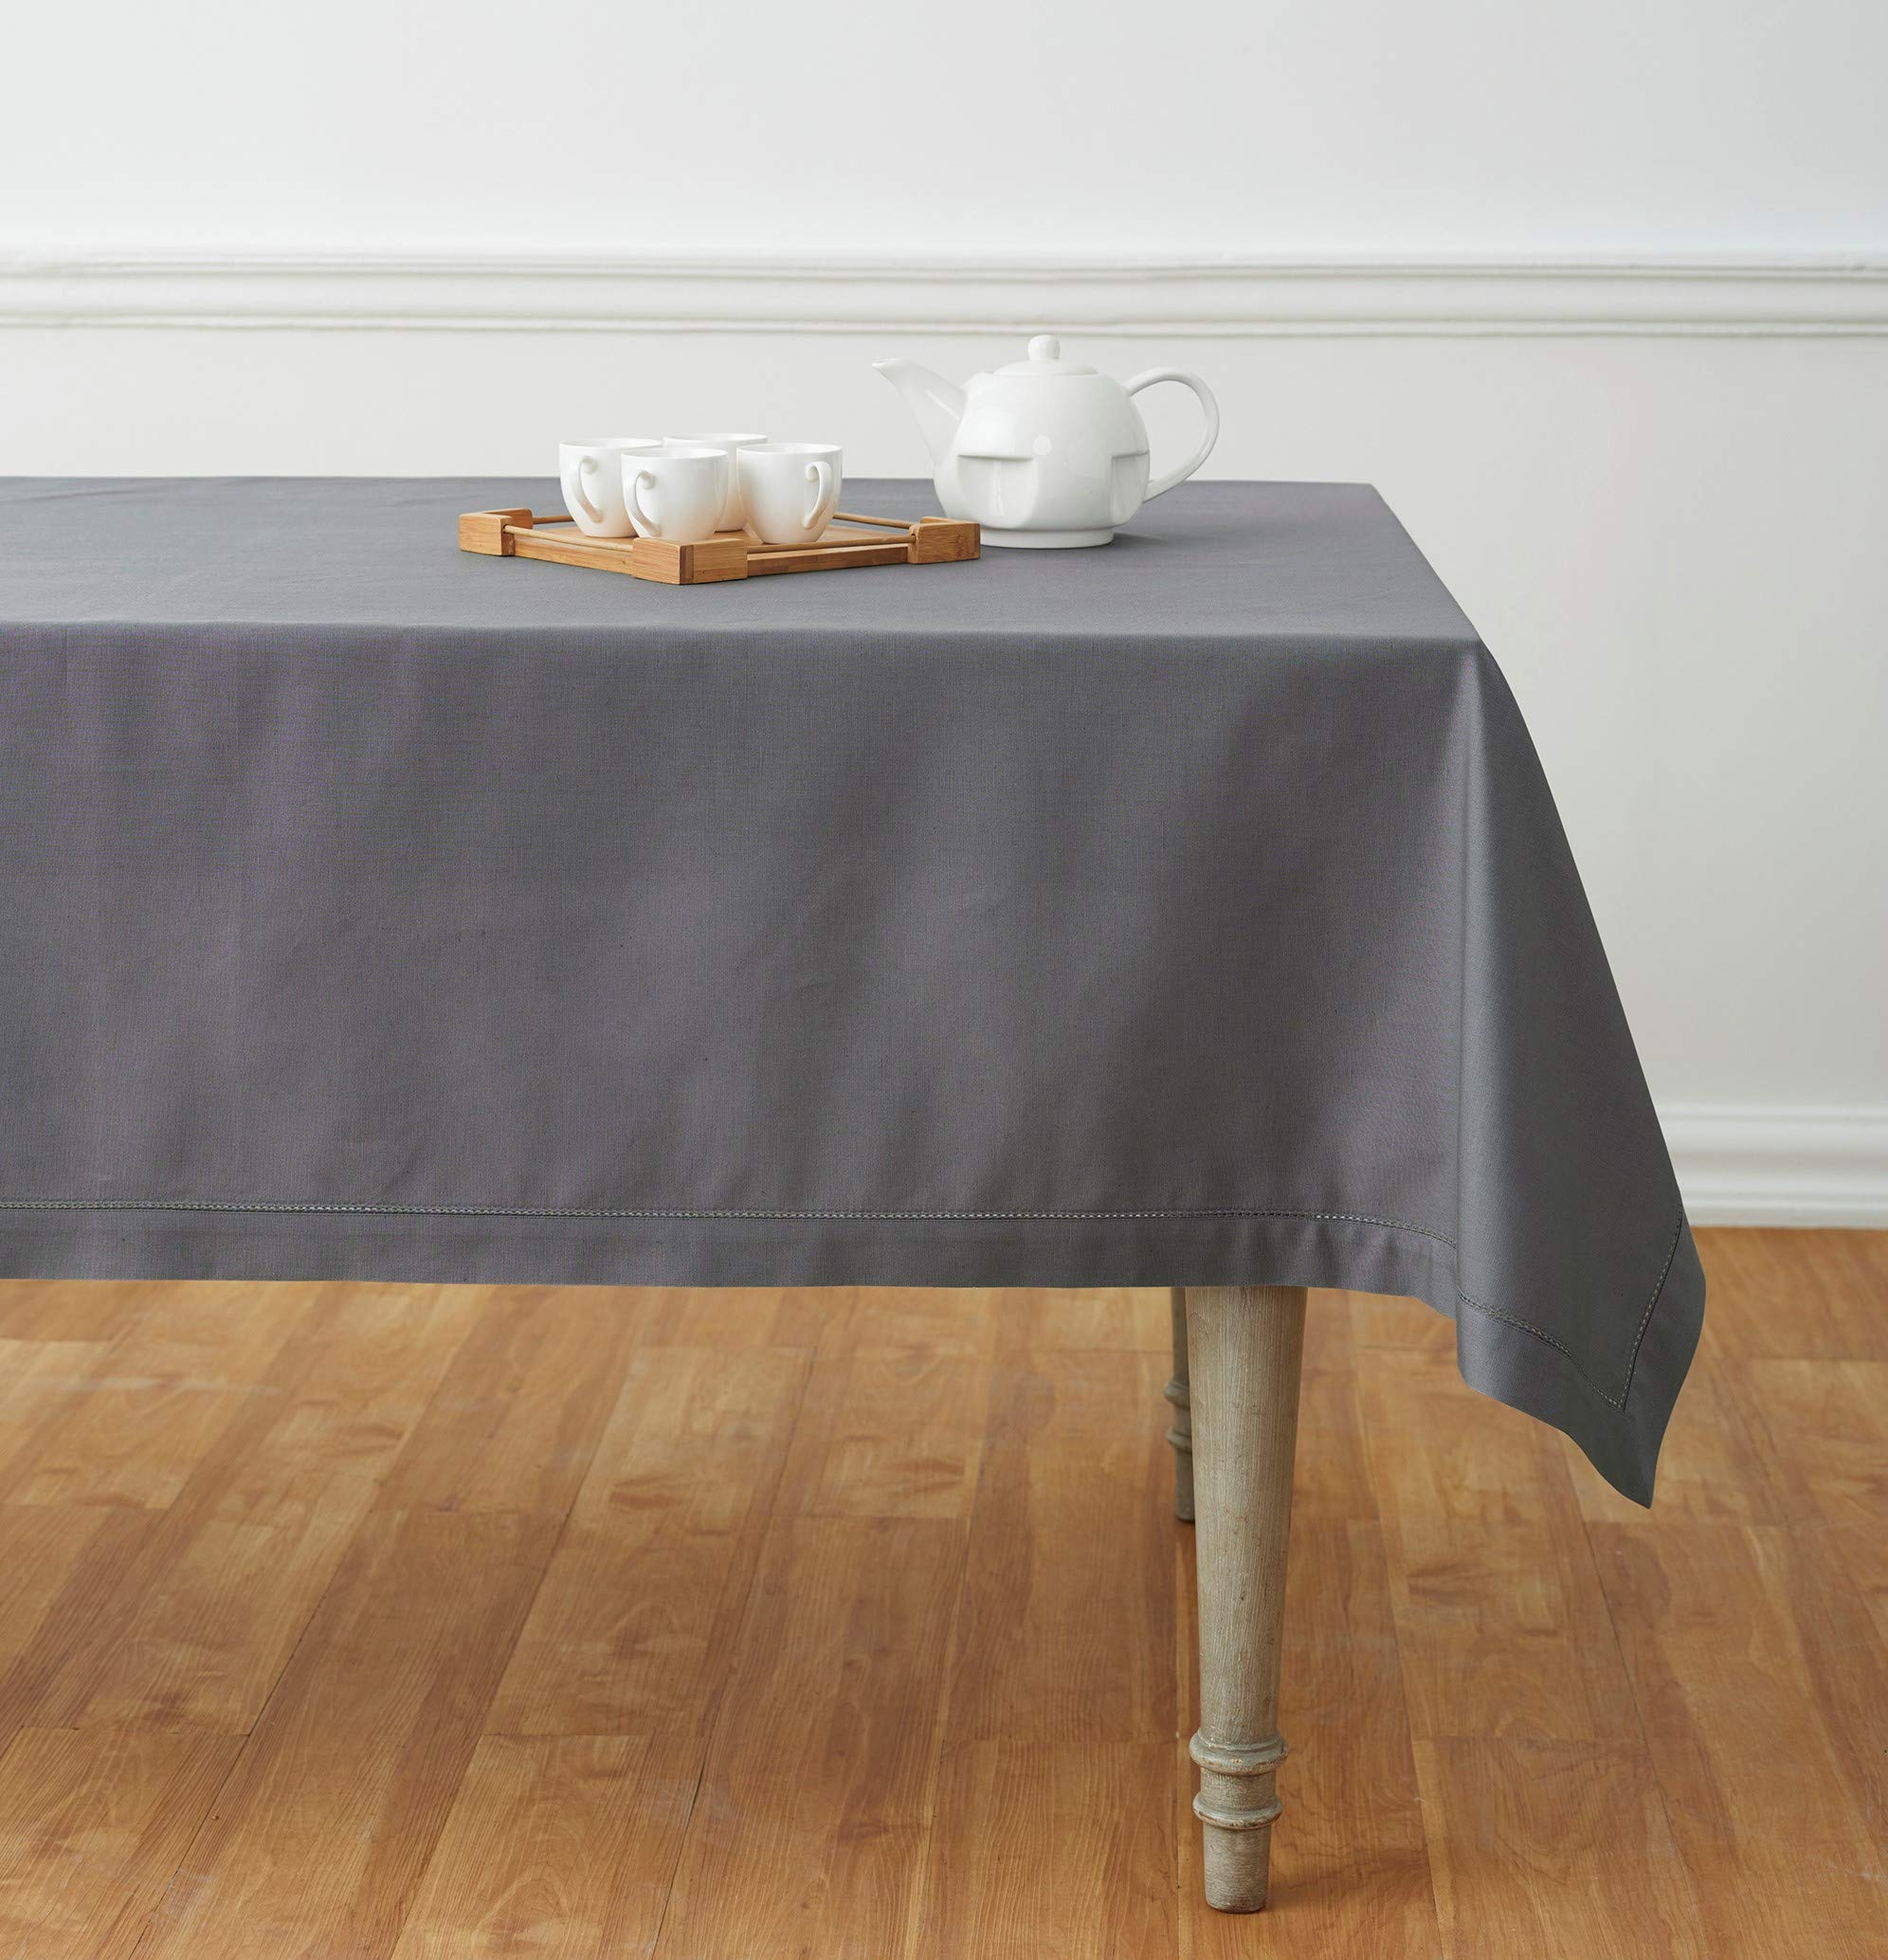 Solino Home Hemstitch Cotton Linen Tablecloth – 58 x 120 Inch, Natural Fabric Machine Washable - Grey Tablecloth for Indoor and Outdoor use